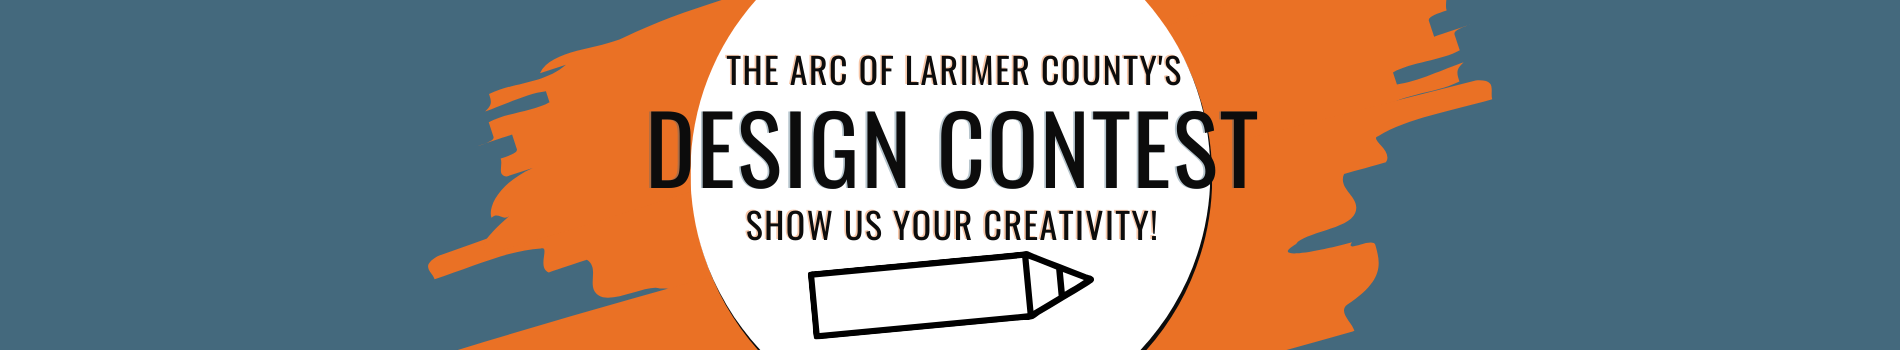 The Arc of Larimer County's Design Contest - Show us your creativity